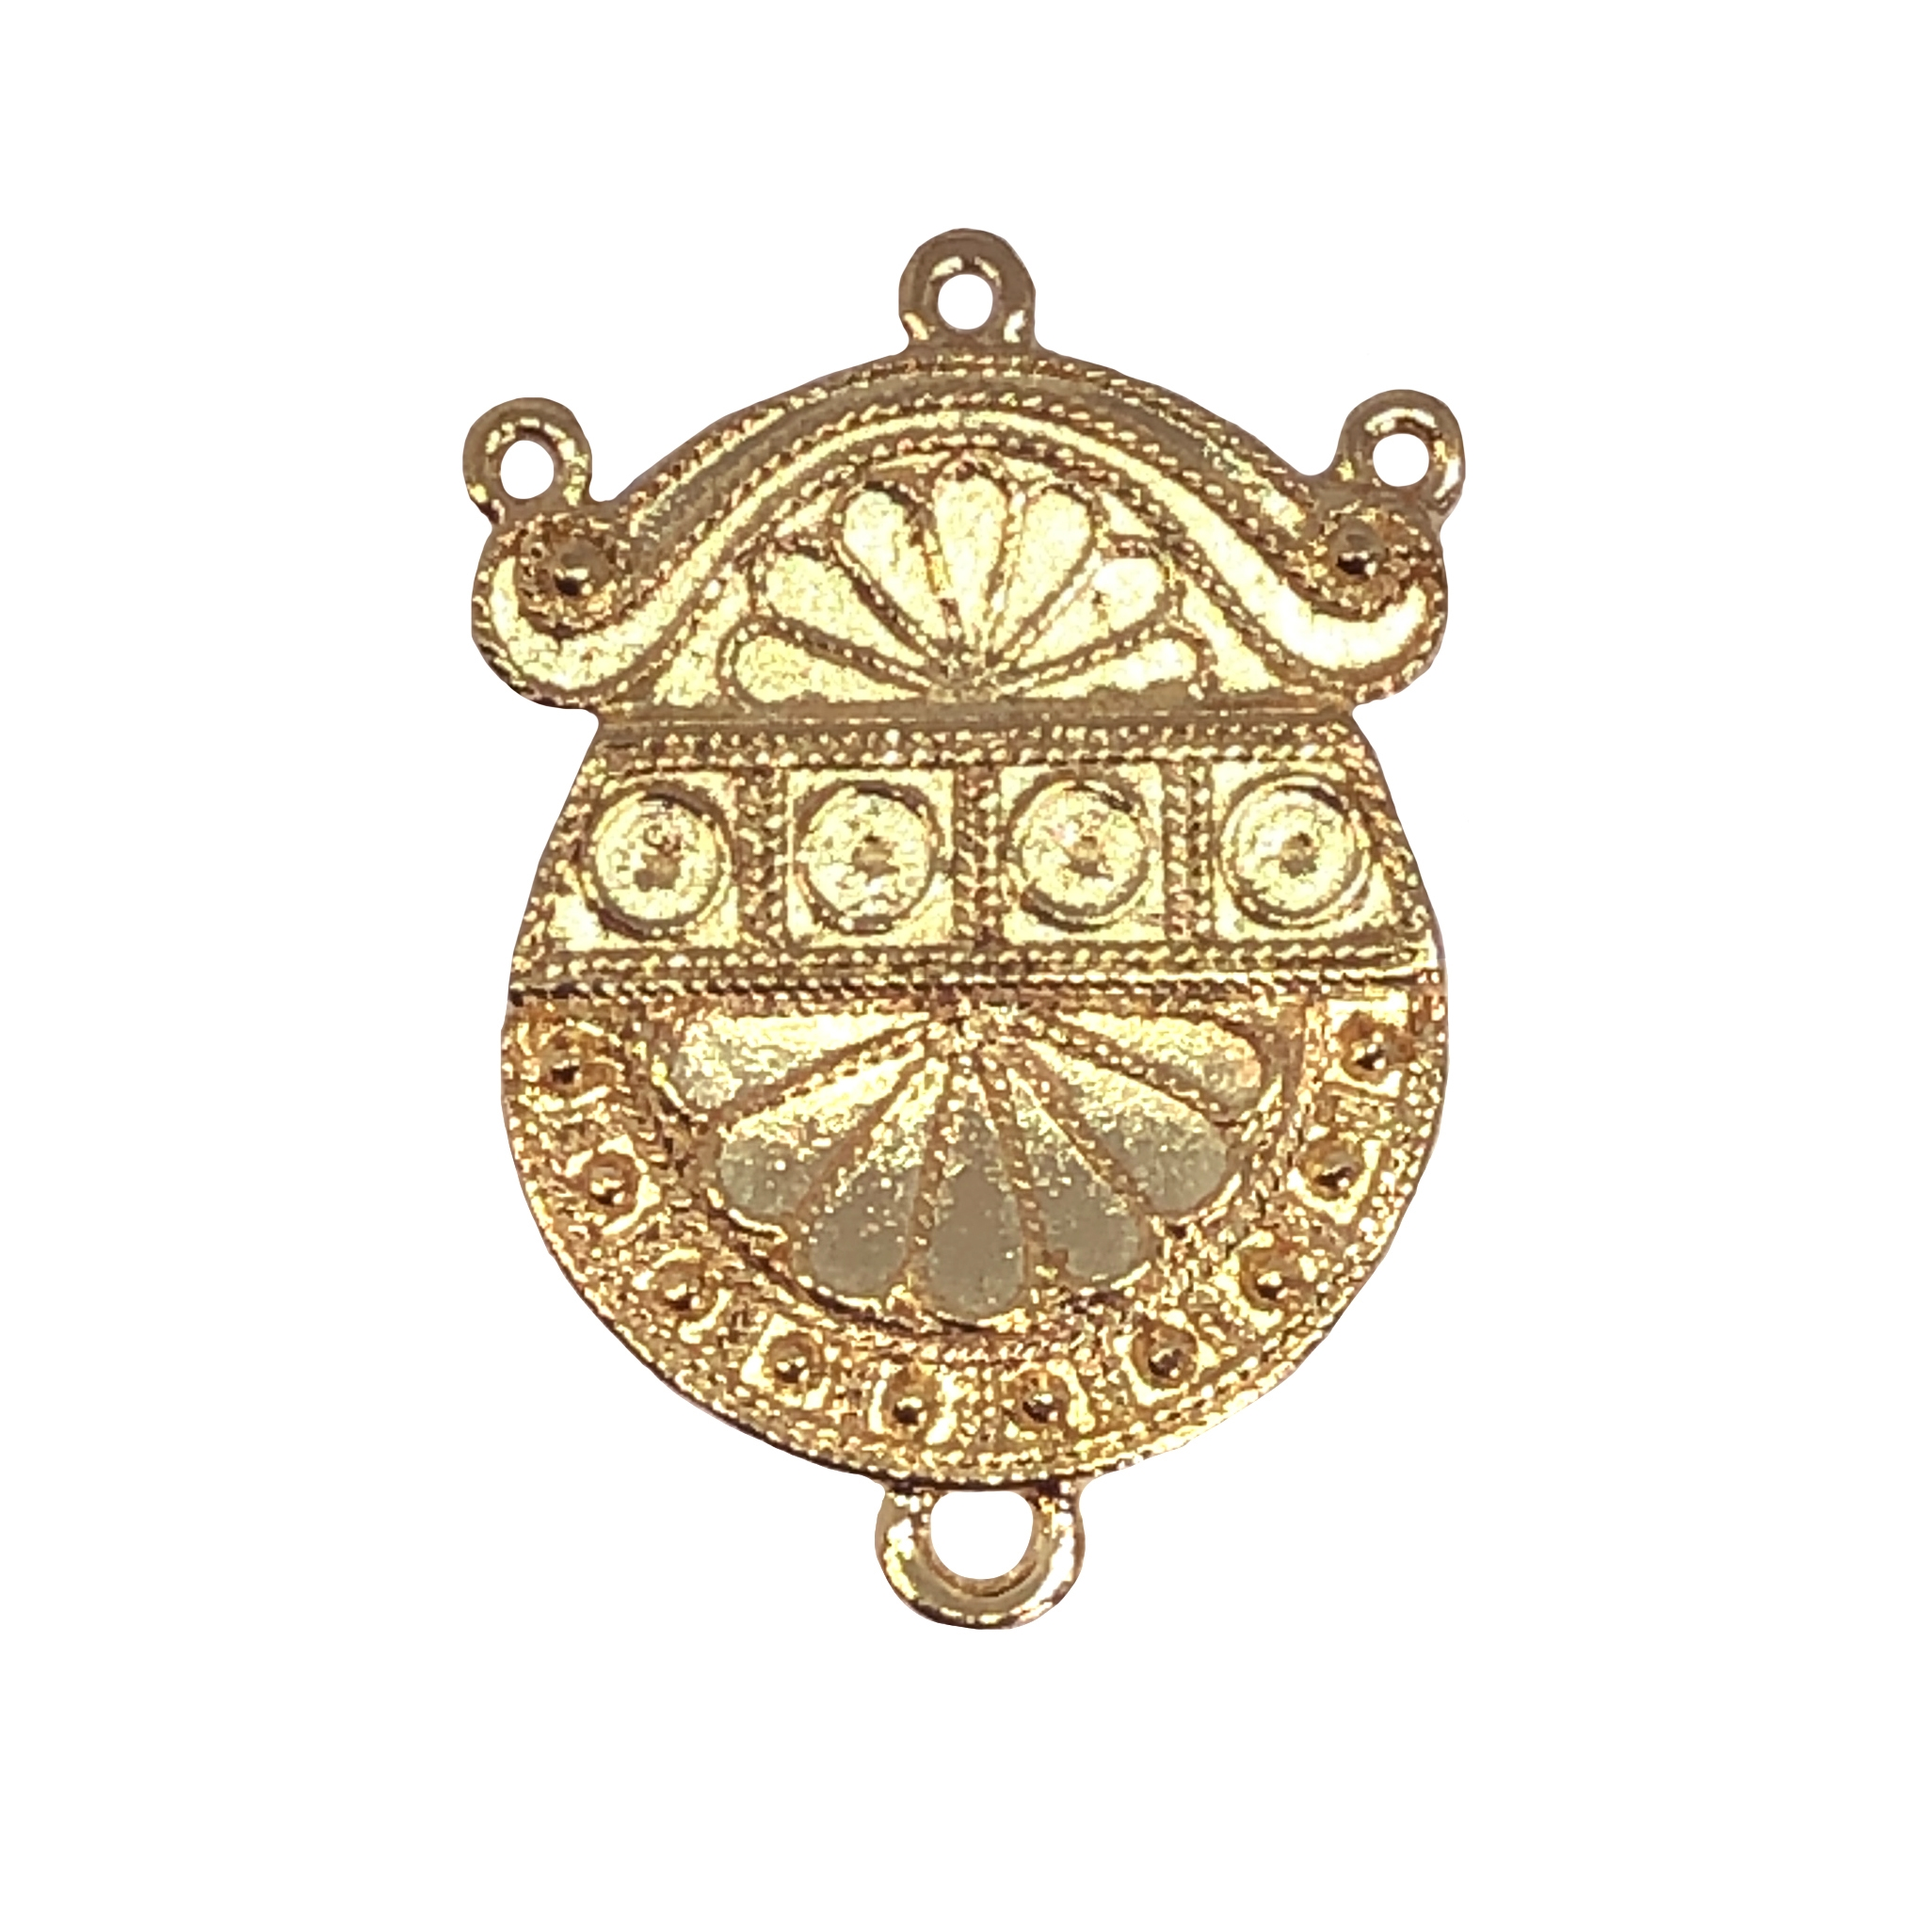 victorian centerpiece pendant, 22K gold dipped, victorian pendant, lead free pewter, B'sue by 1928, gold, 22K, vintage jewelry parts, pewter jewelry parts, us made, 1928 Company, designer jewelry, B'sue Boutiques, 34x26mm, 09491